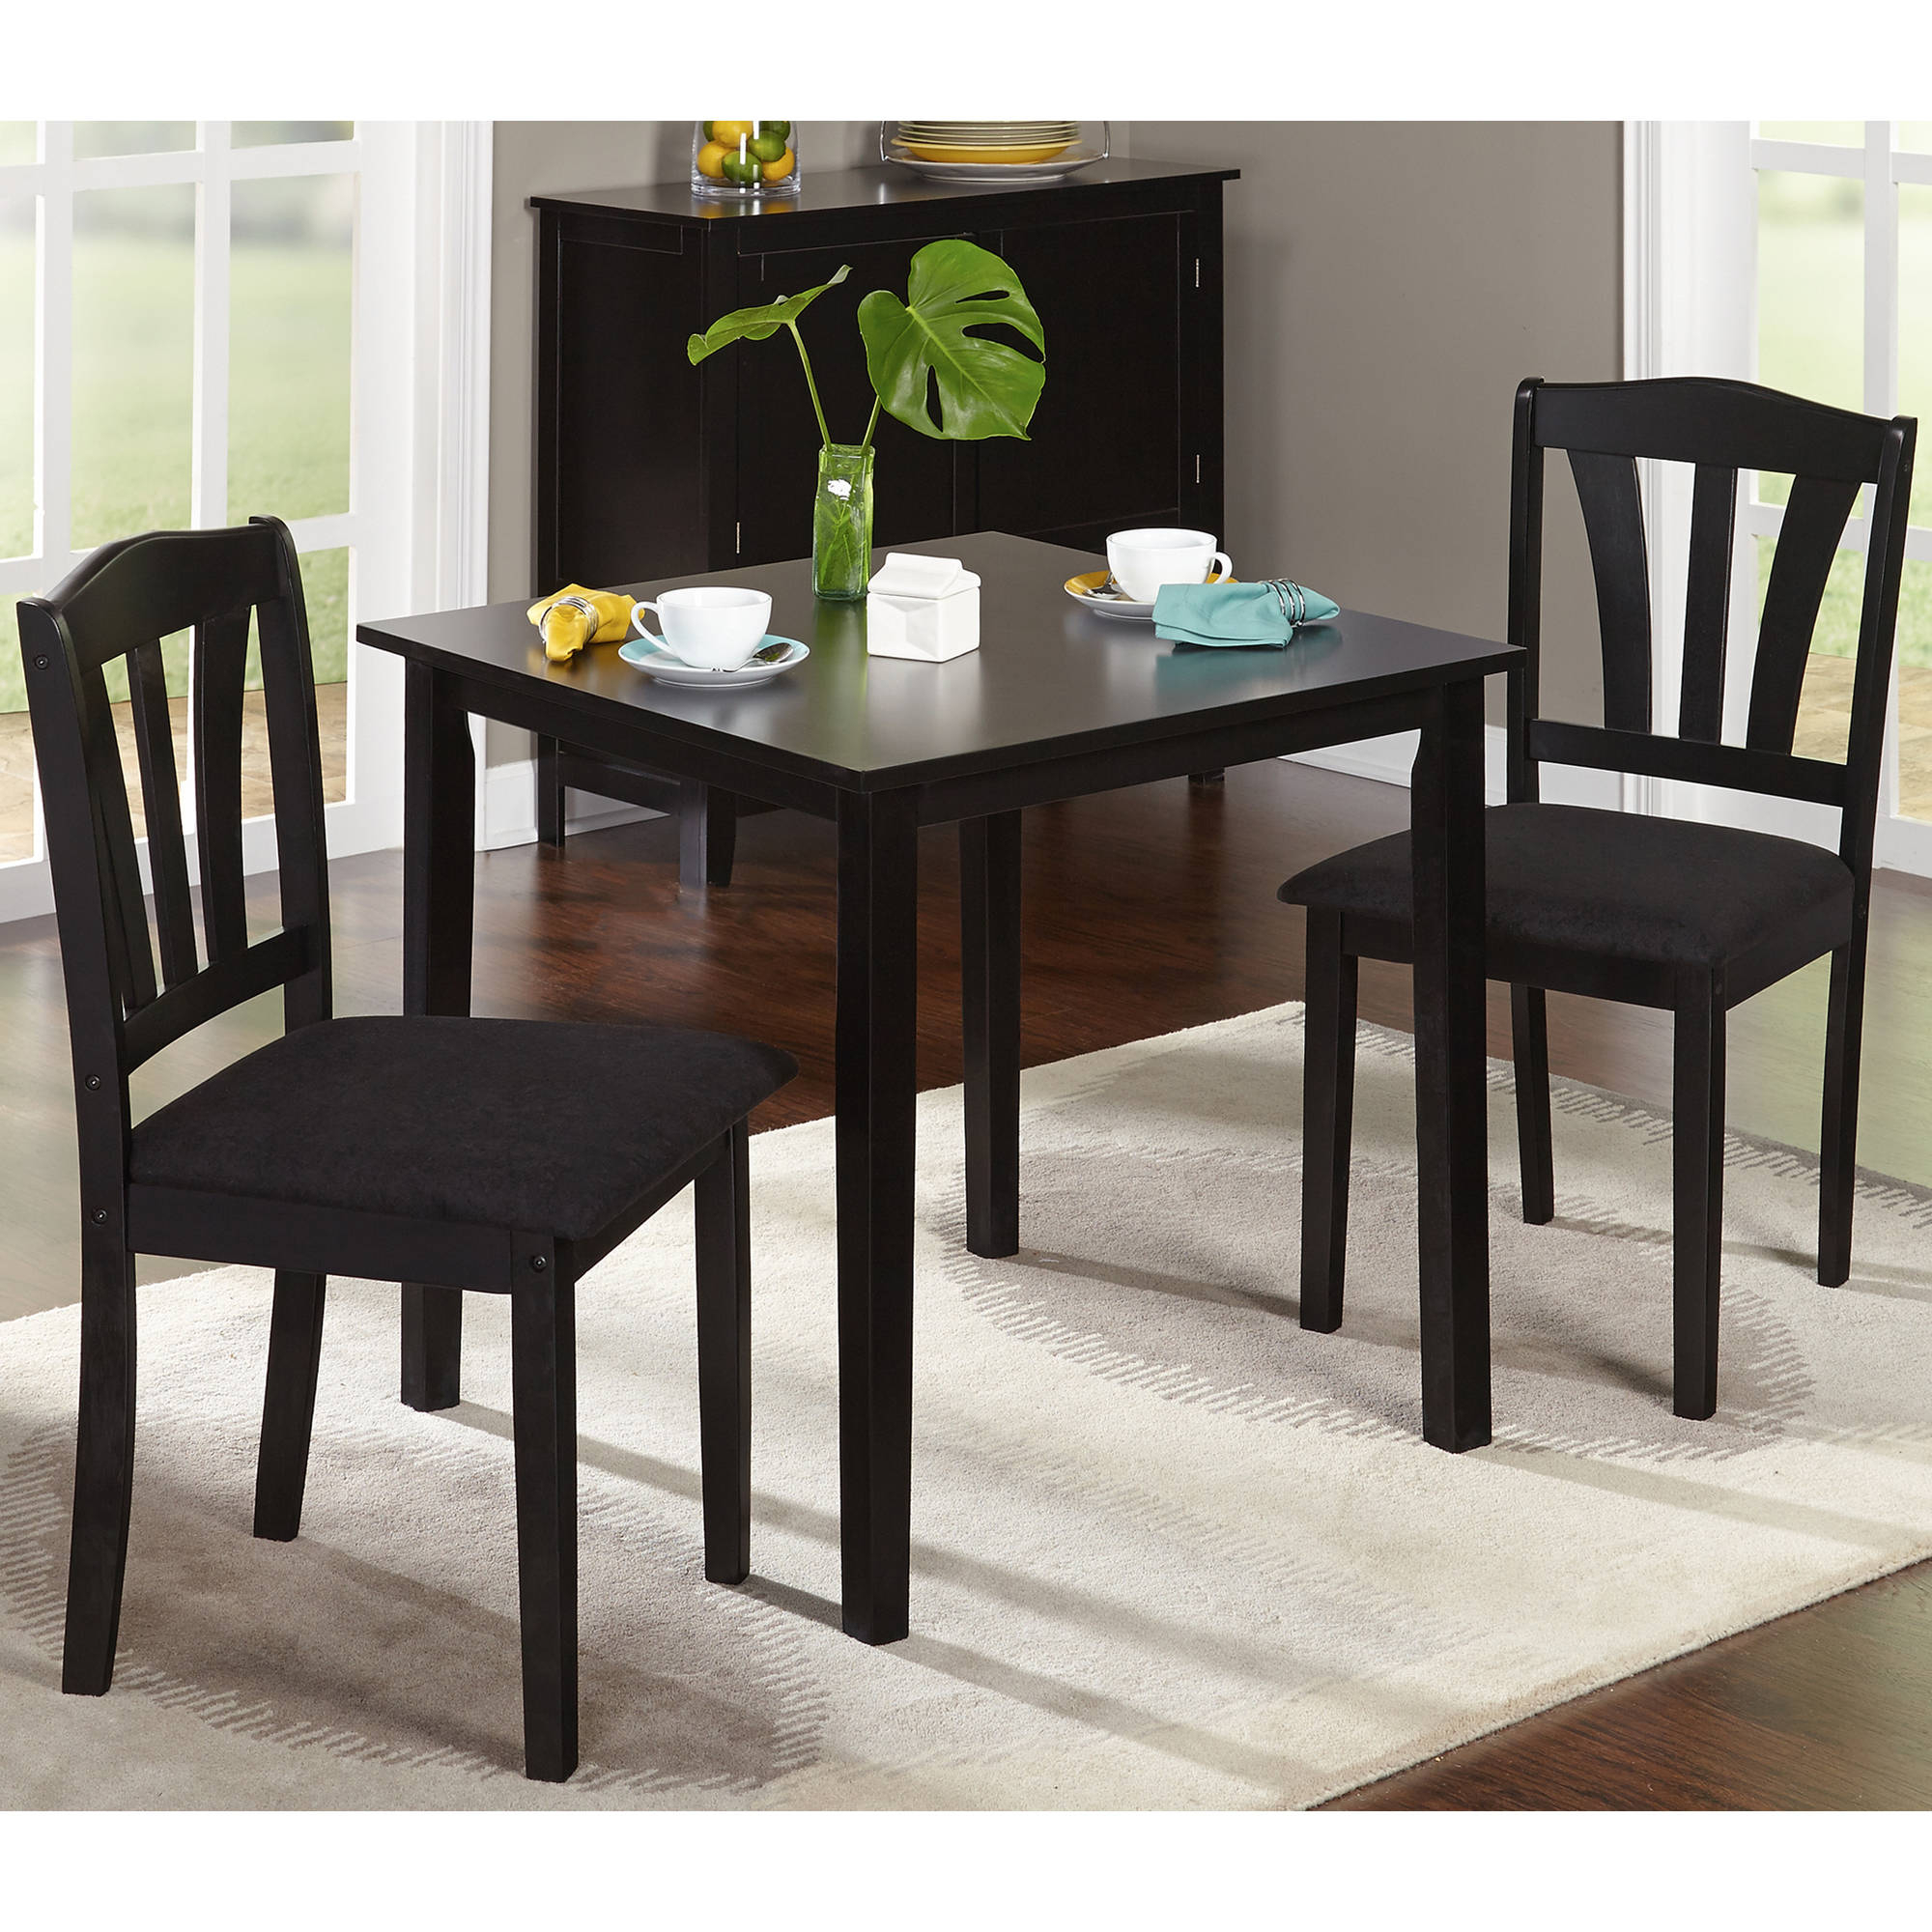 Fashionable Metropolitan 3 Piece Dining Set, Multiple Finishes In Rossiter 3 Piece Dining Sets (Gallery 4 of 20)